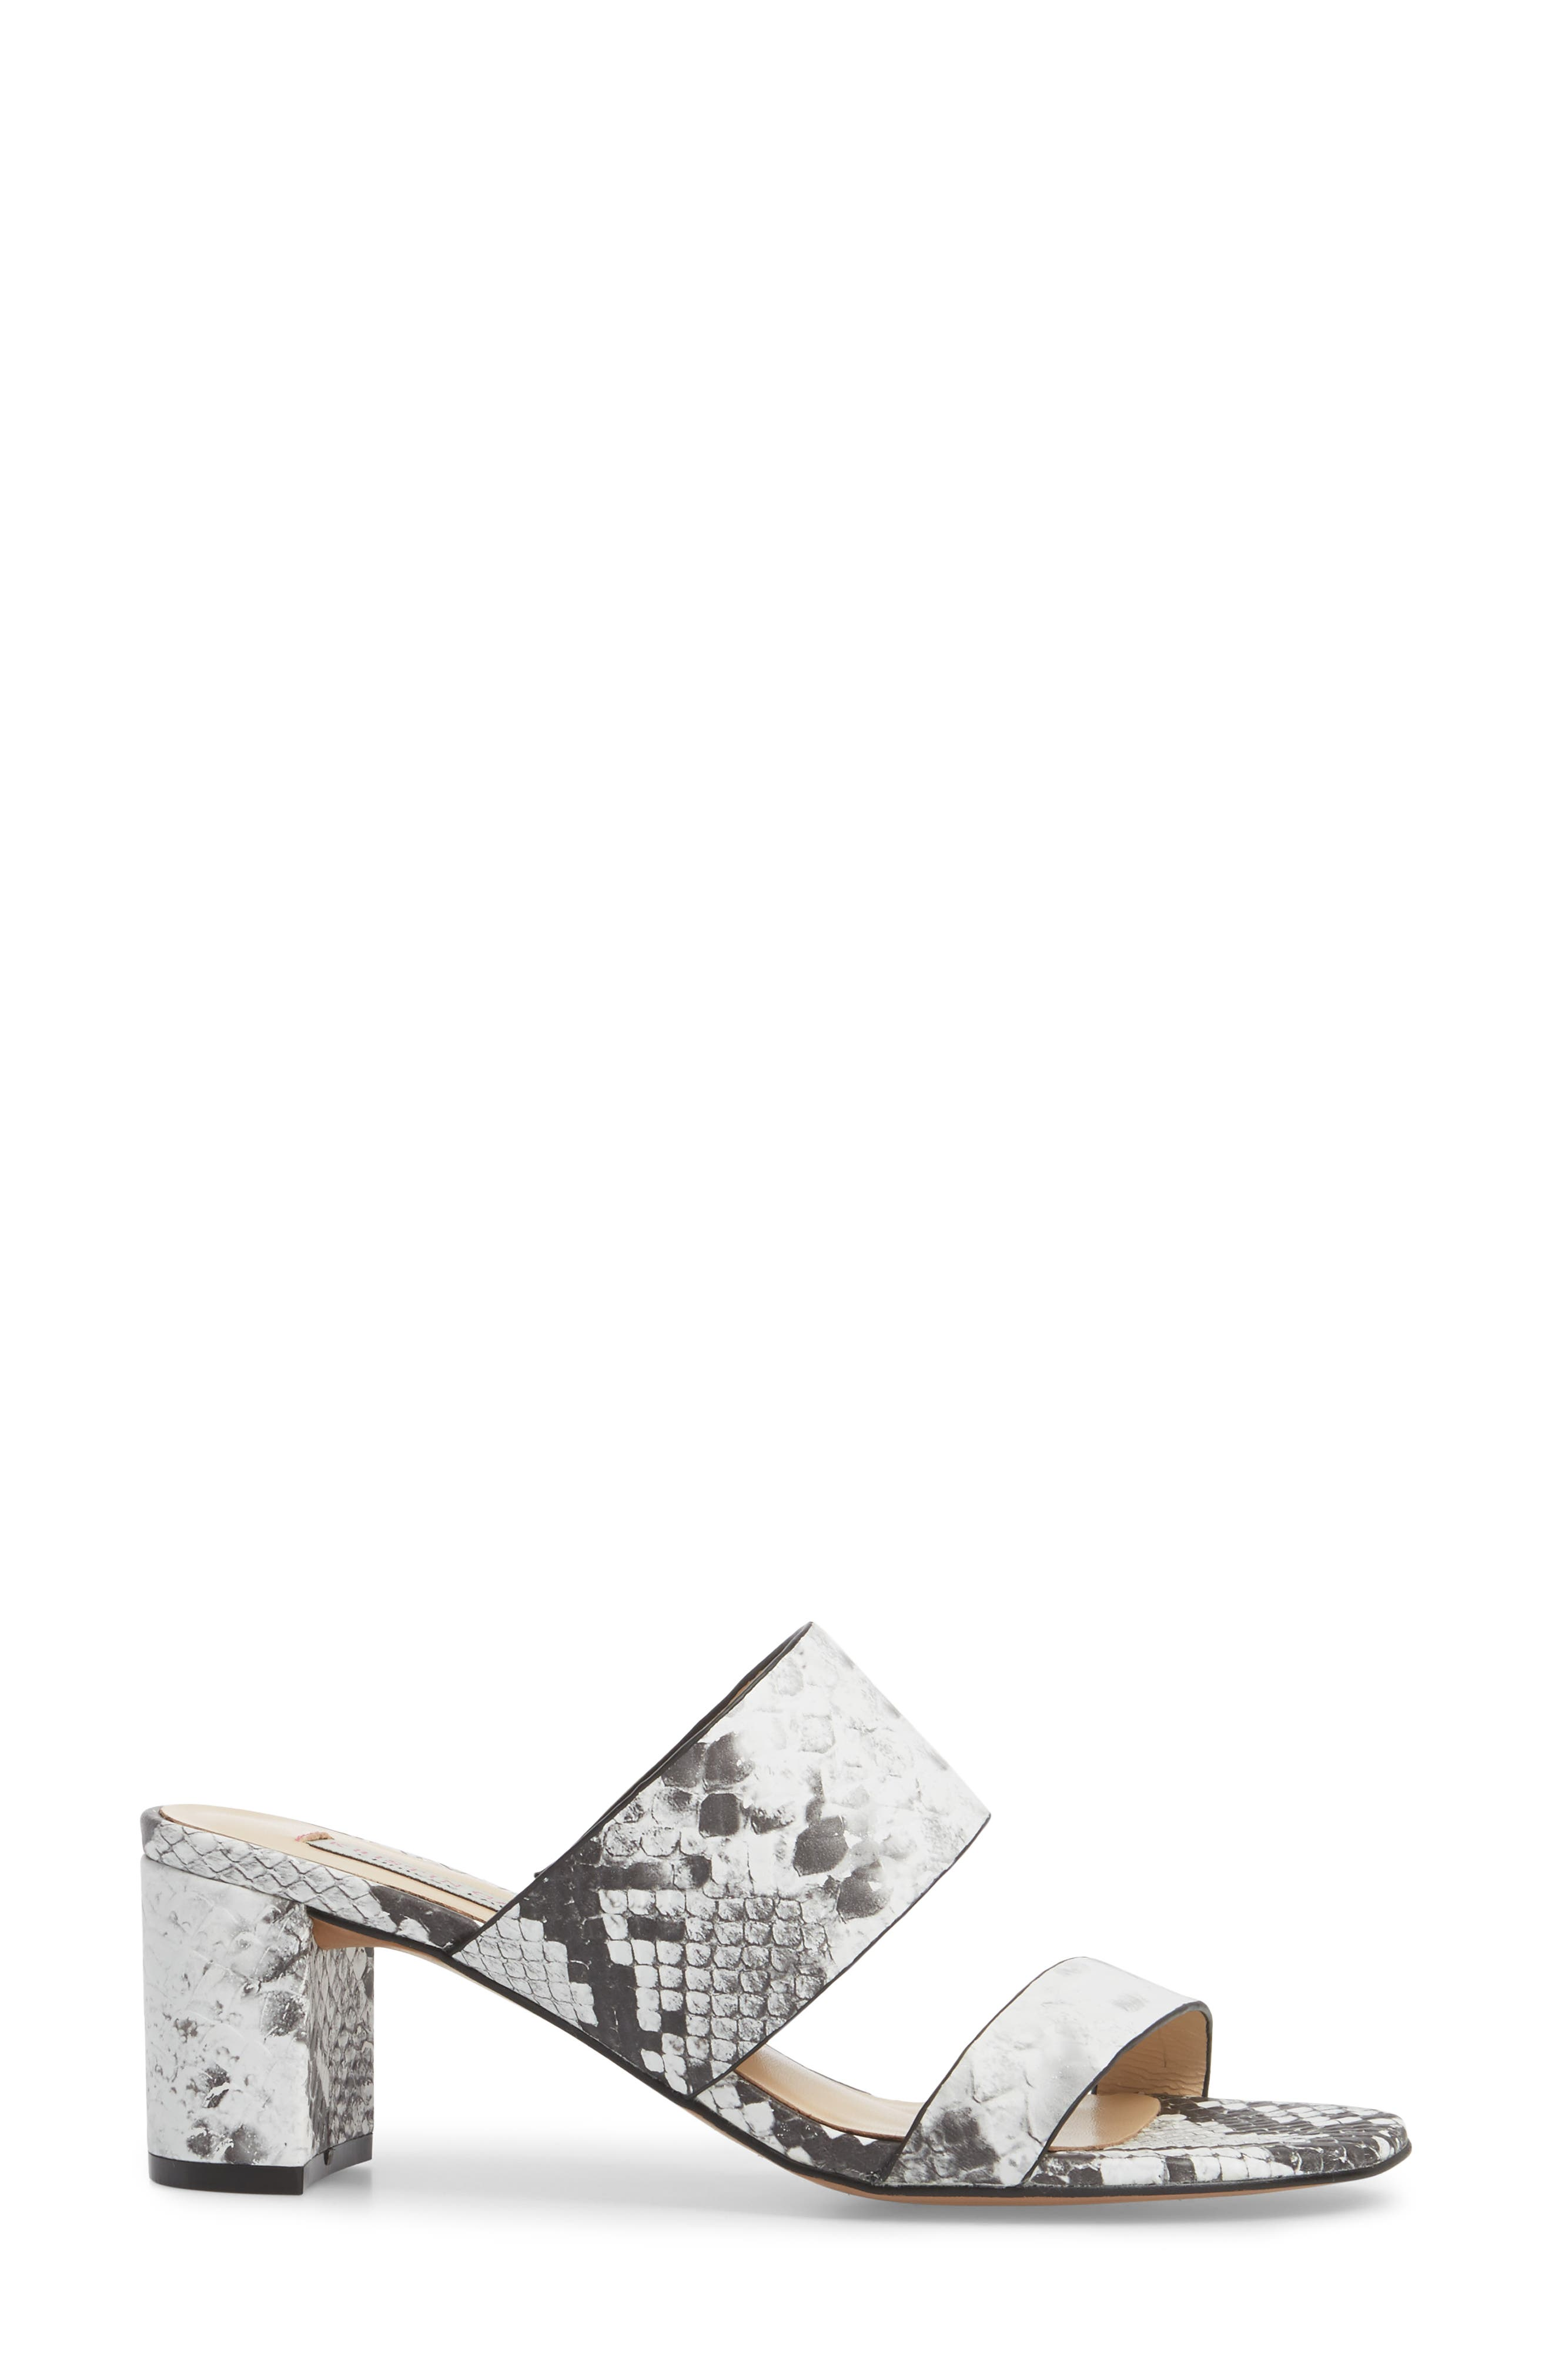 Lakeview Sandal,                             Alternate thumbnail 3, color,                             GREY/ WHITE PRINT LEATHER